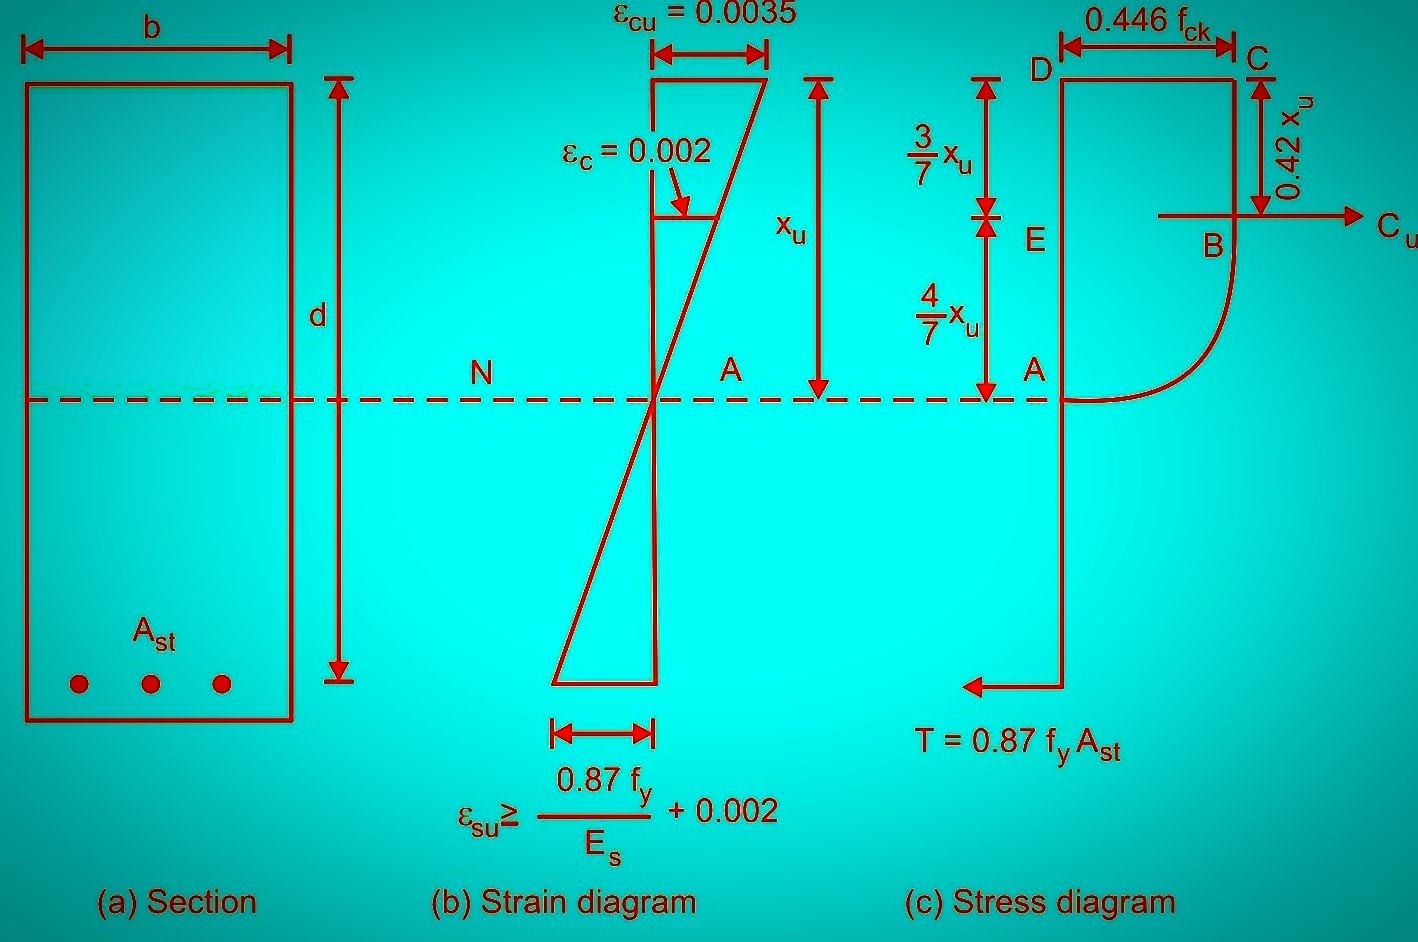 stress and strain distribution in a singly reinforced beam as per Is 456.jpg